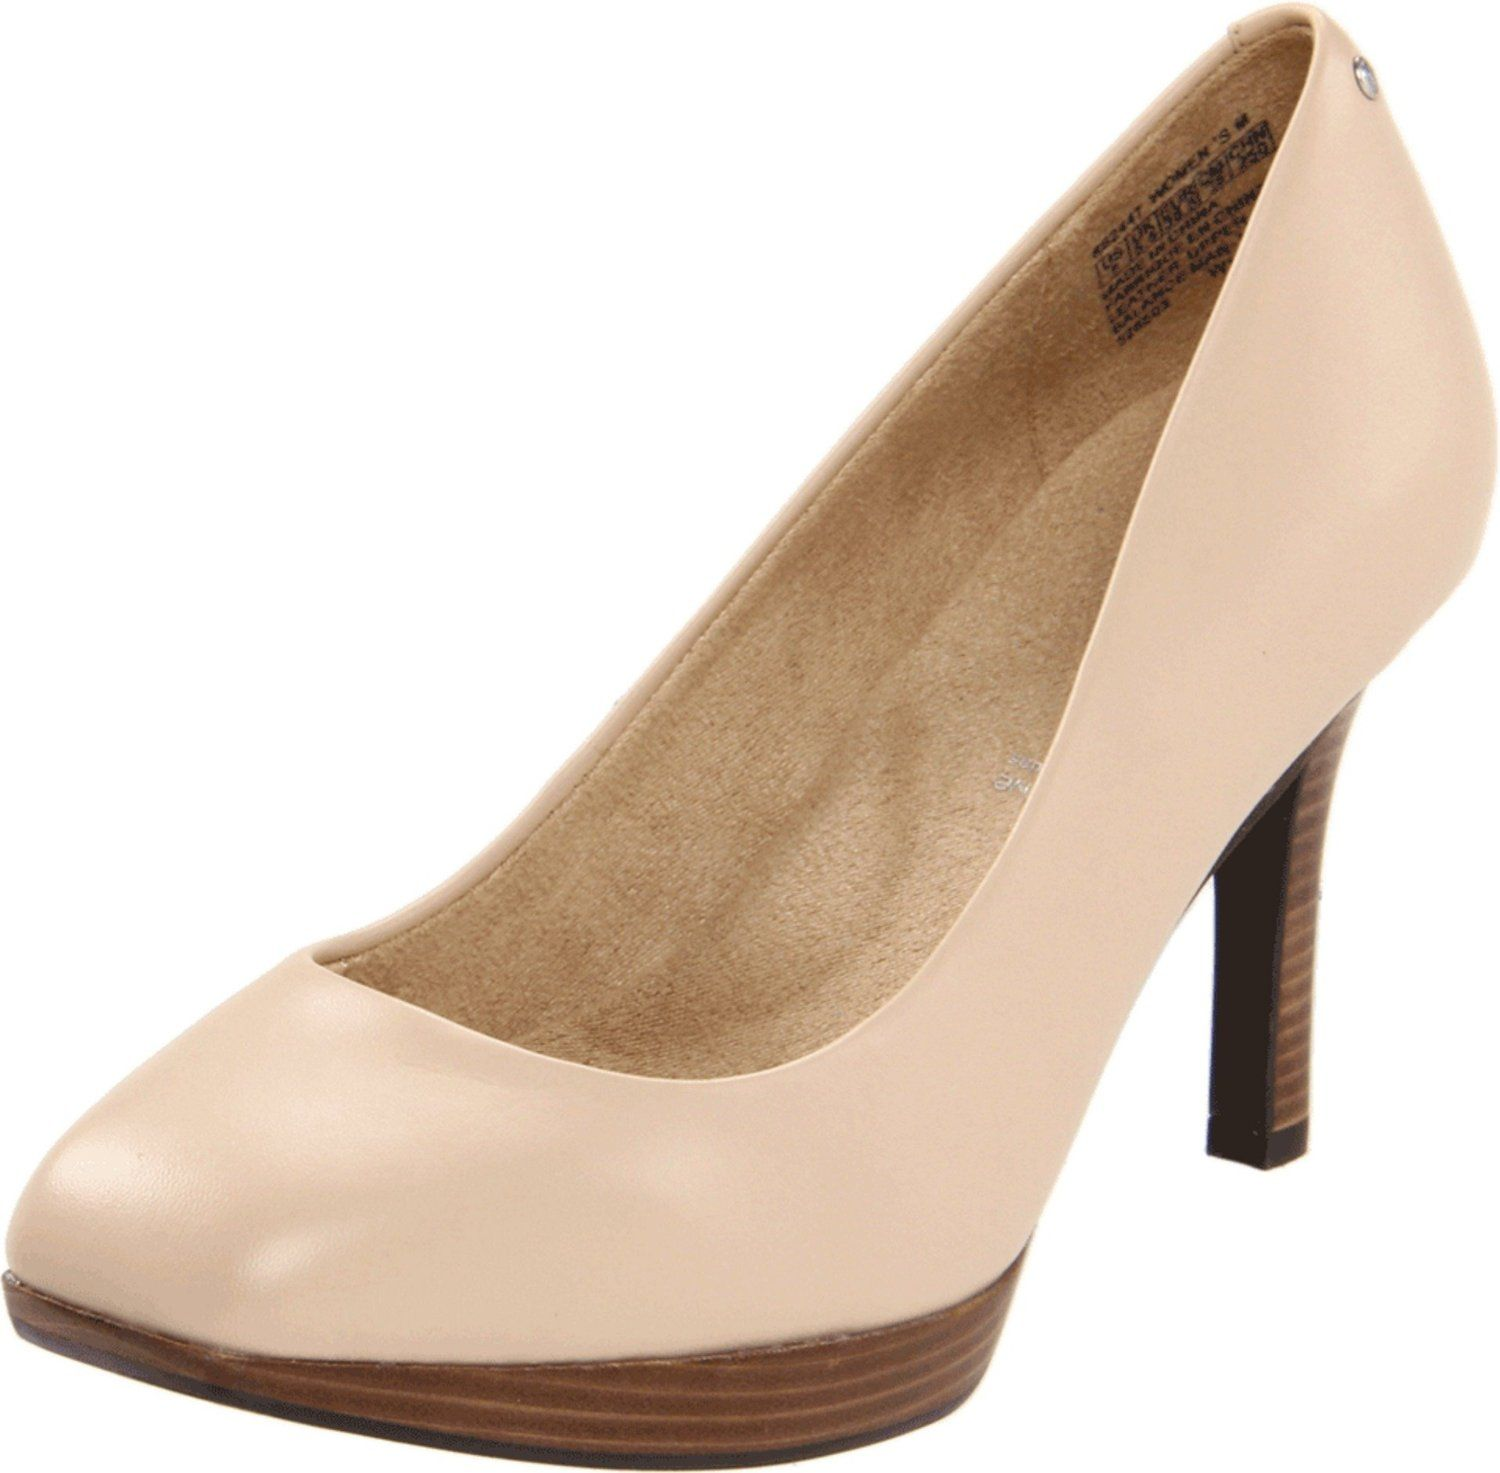 Nude Shoes » STEAL THE LOOK